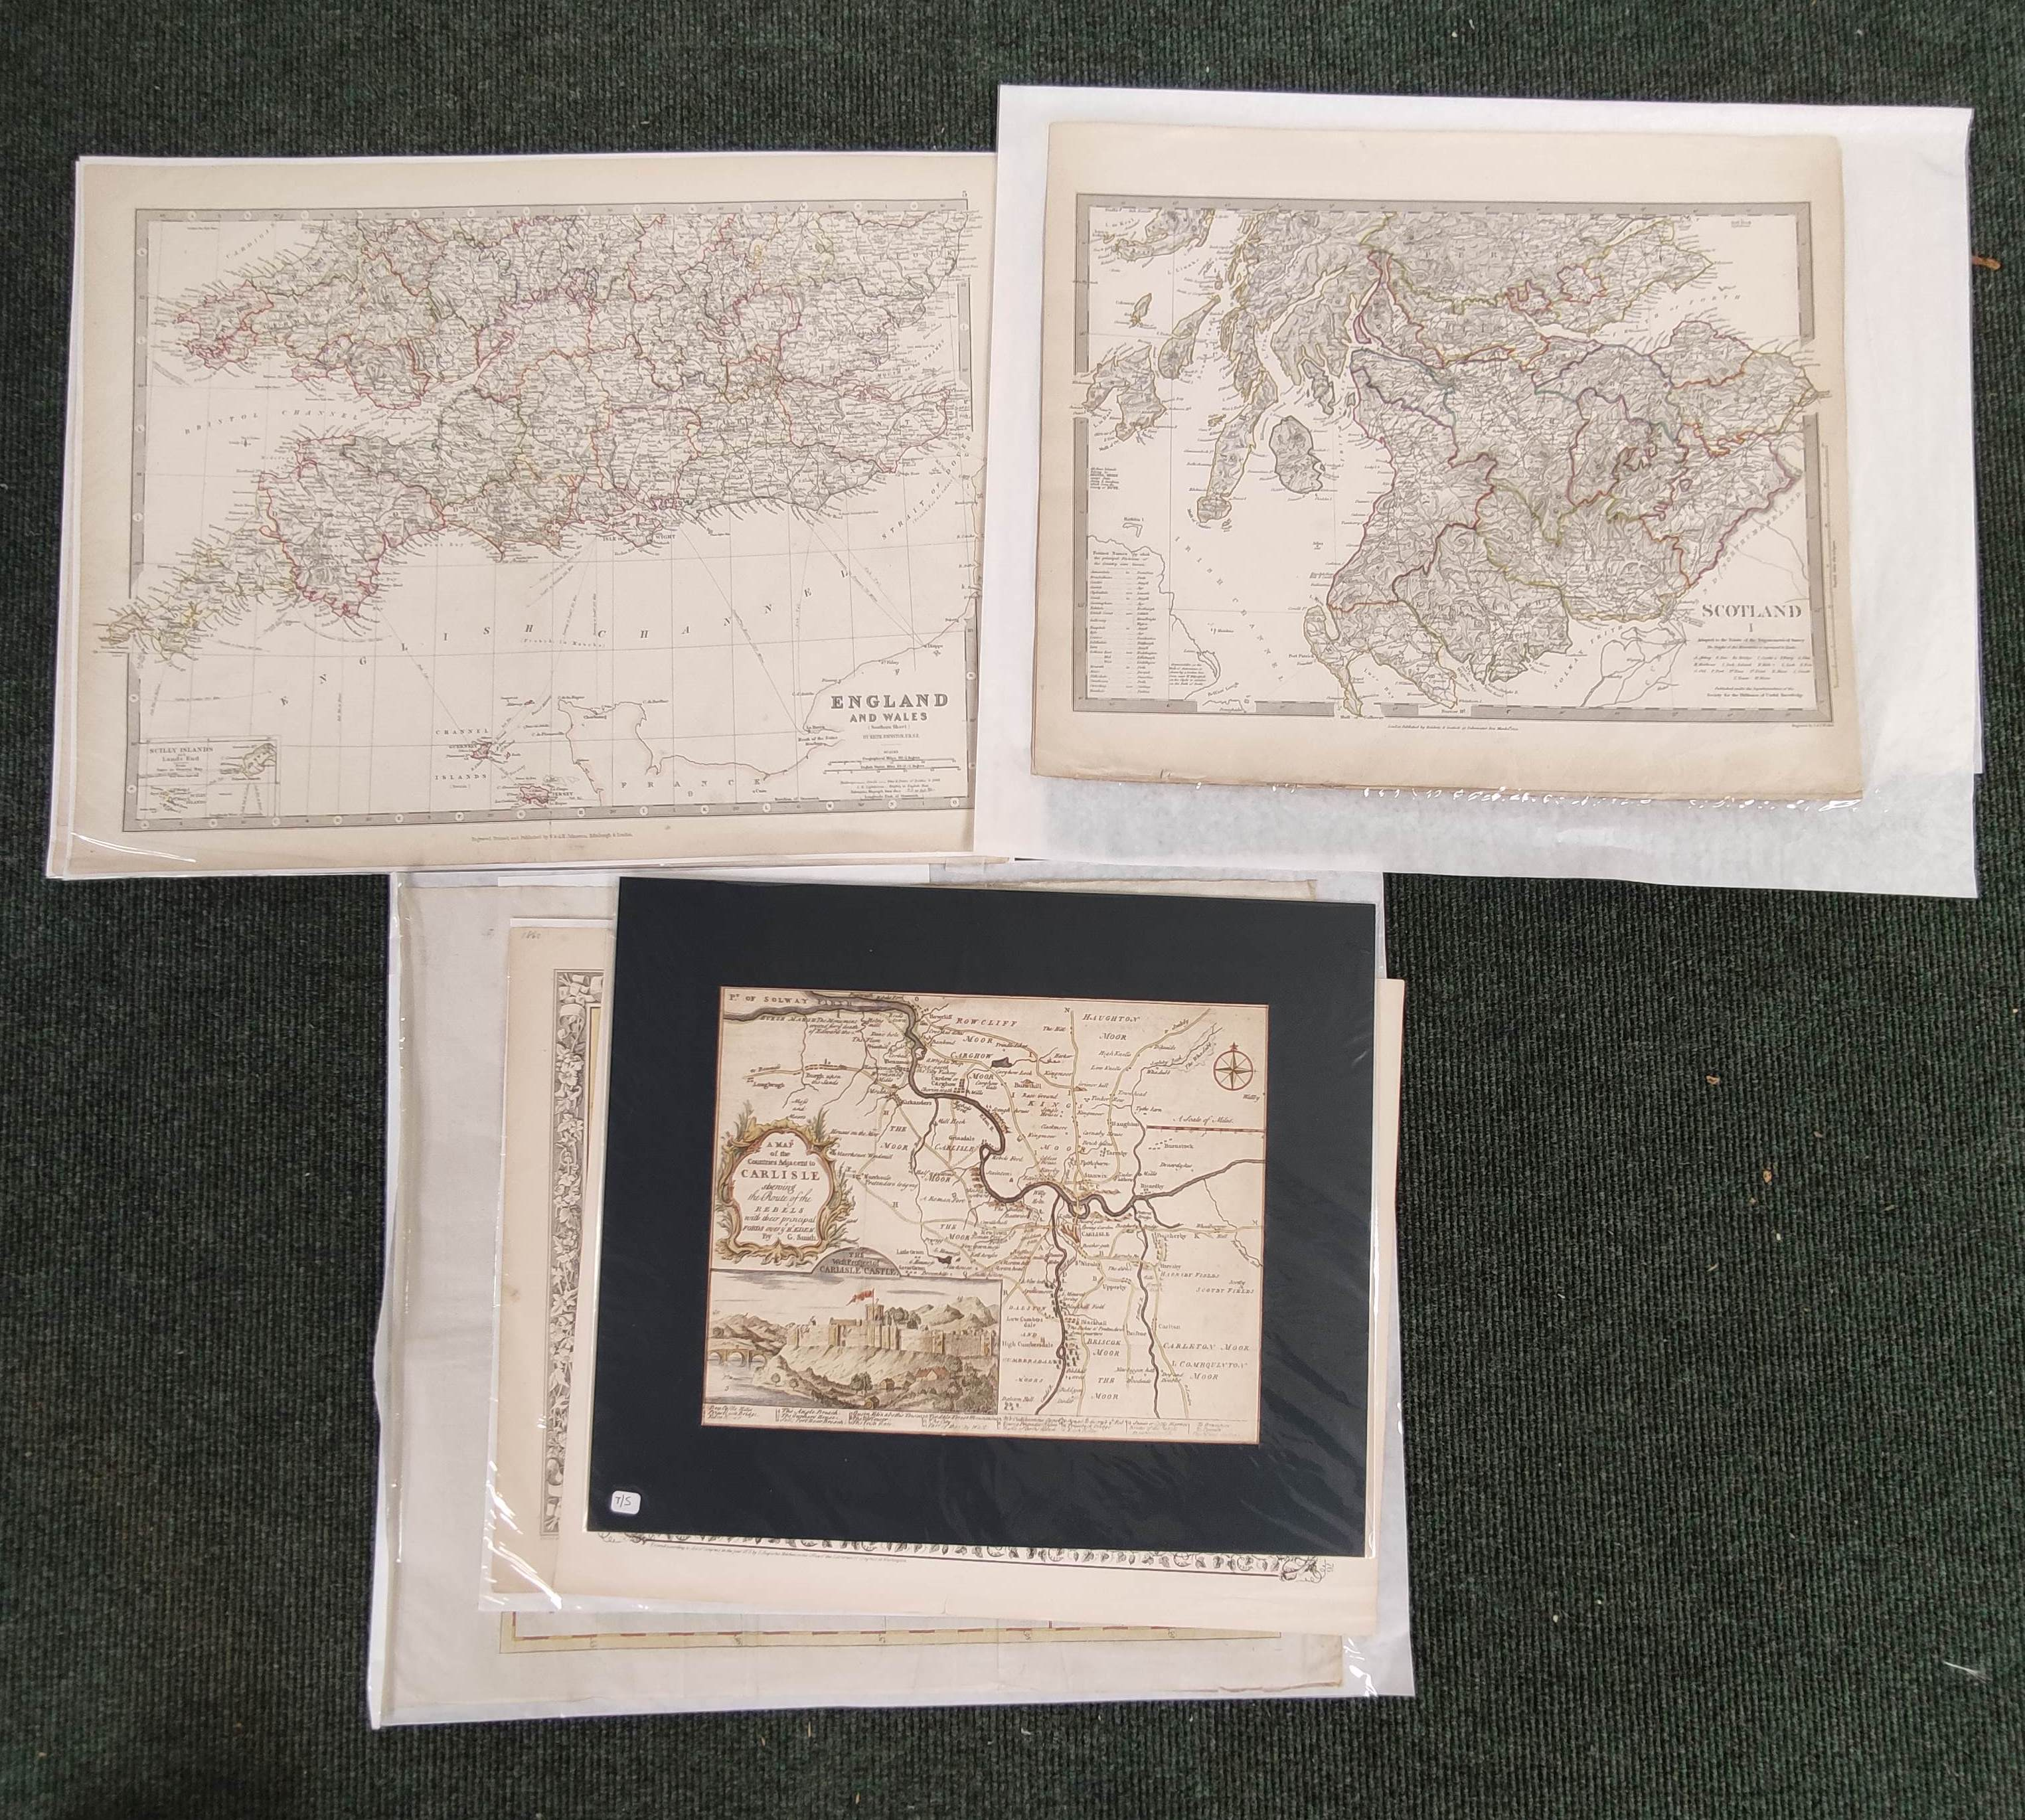 Engraved Maps.2 hand coloured eng. double maps of Ireland & Scotland by S. Augustus Mitchell,